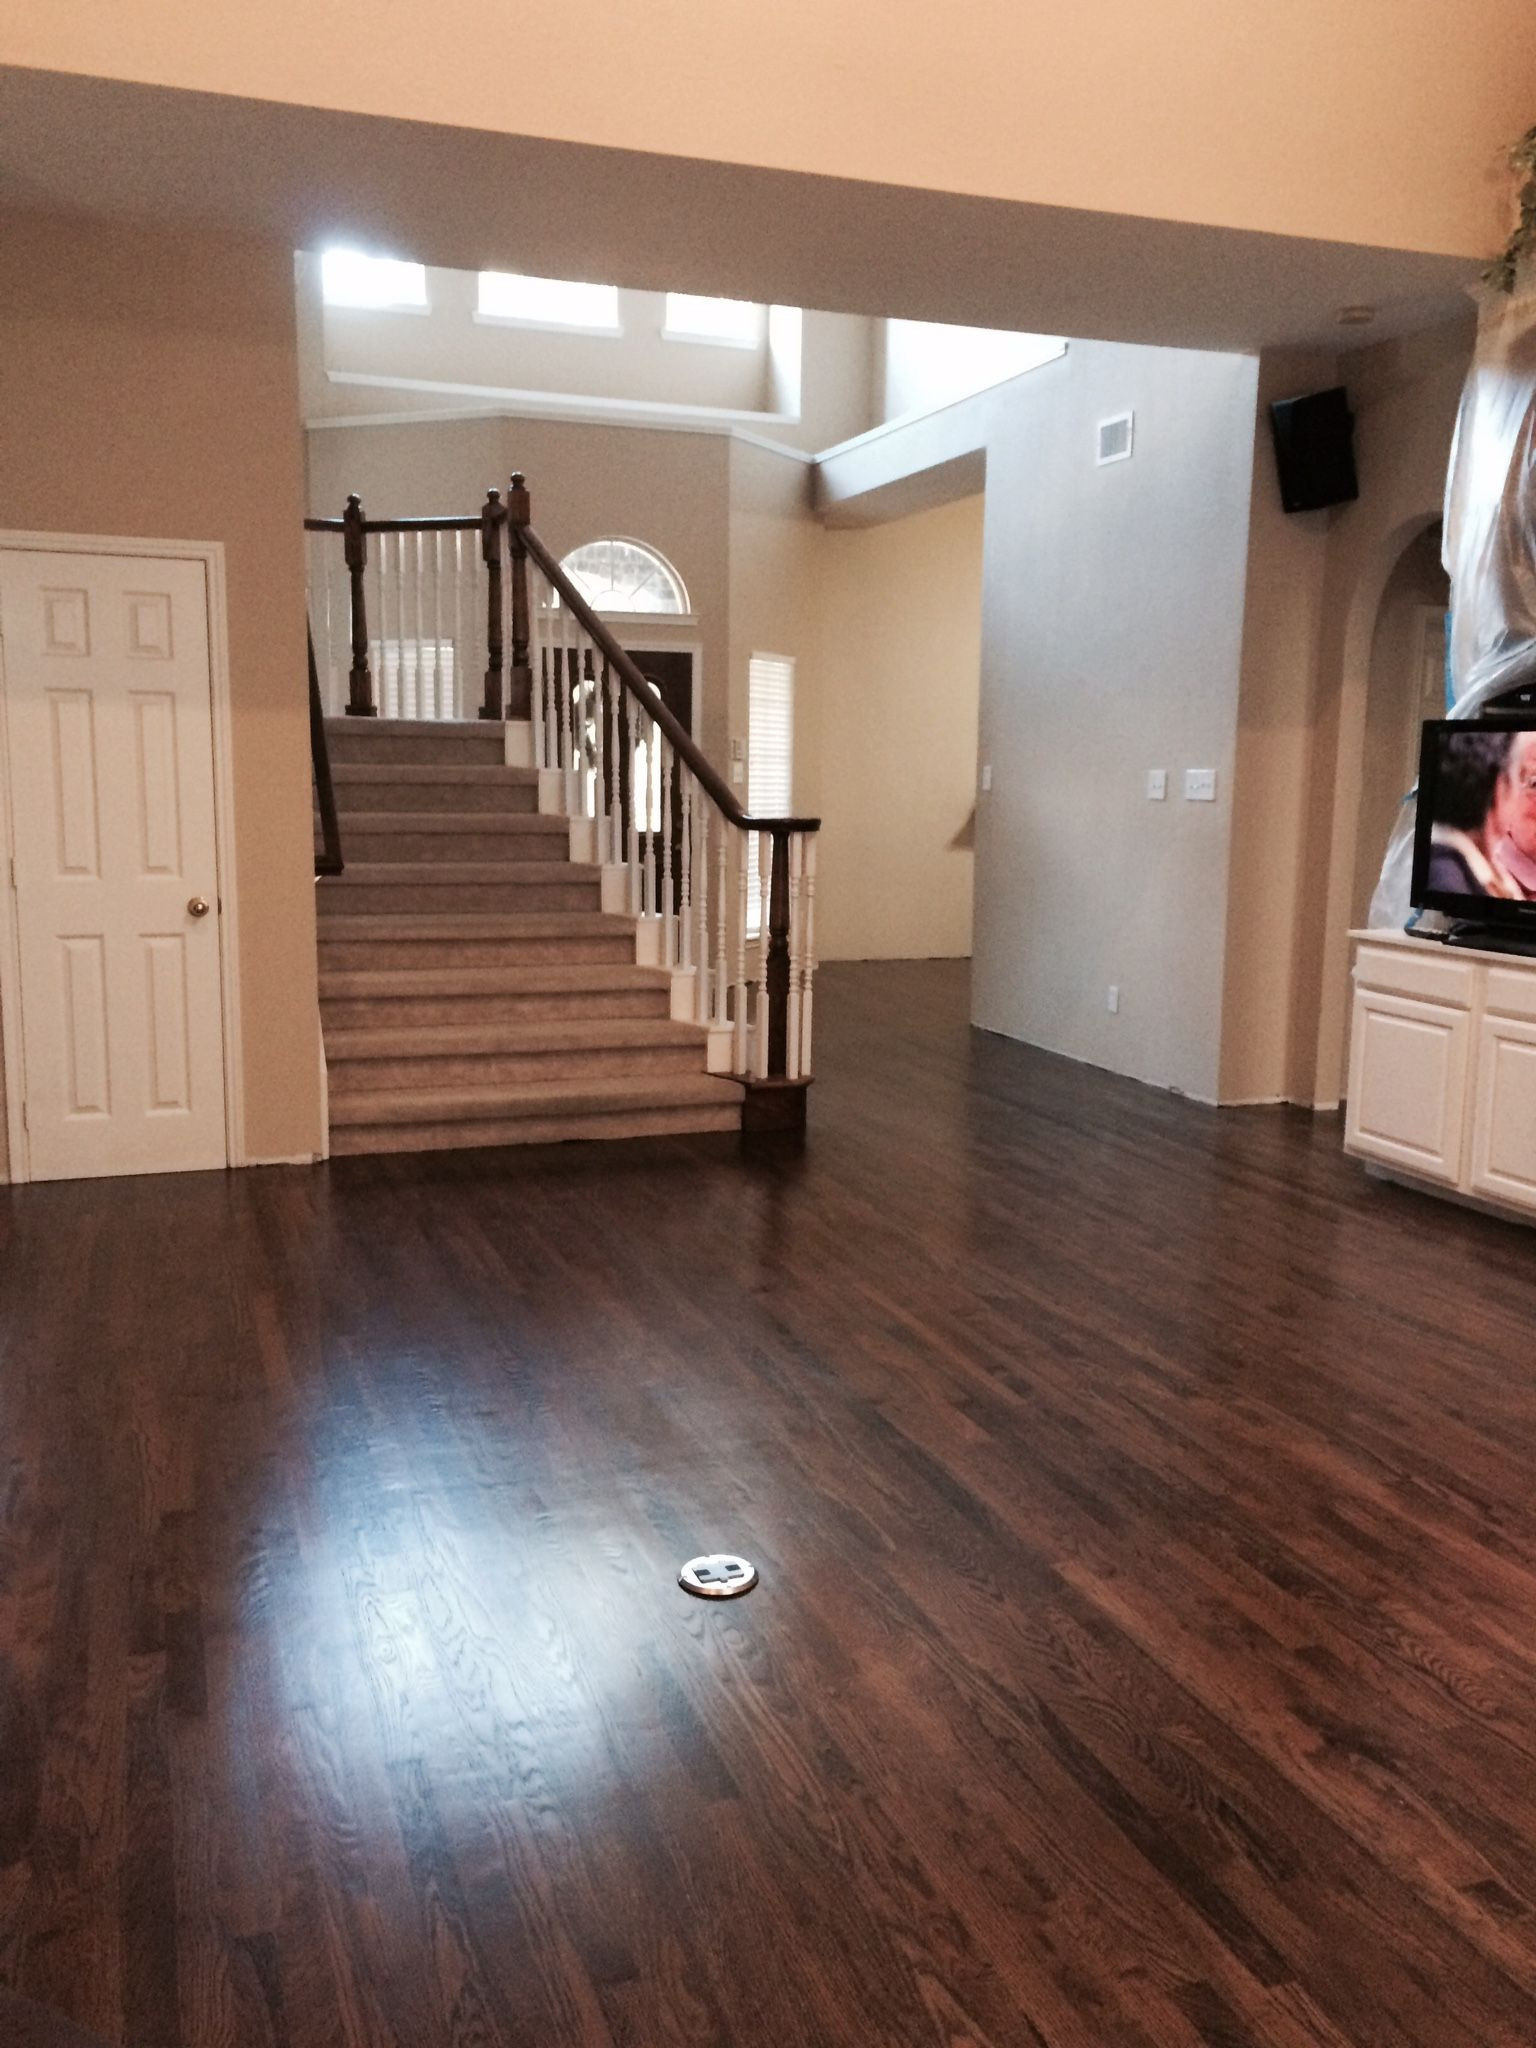 Hardwood Floor Refinishing San Francisco Ca Of Dark Walnut Stain On White Oak Hardwood Remodel 1floors In 2018 within Dark Walnut Stain On White Oak Hardwood Walnut Hardwood Flooring Hardwood Floor Stain Colors